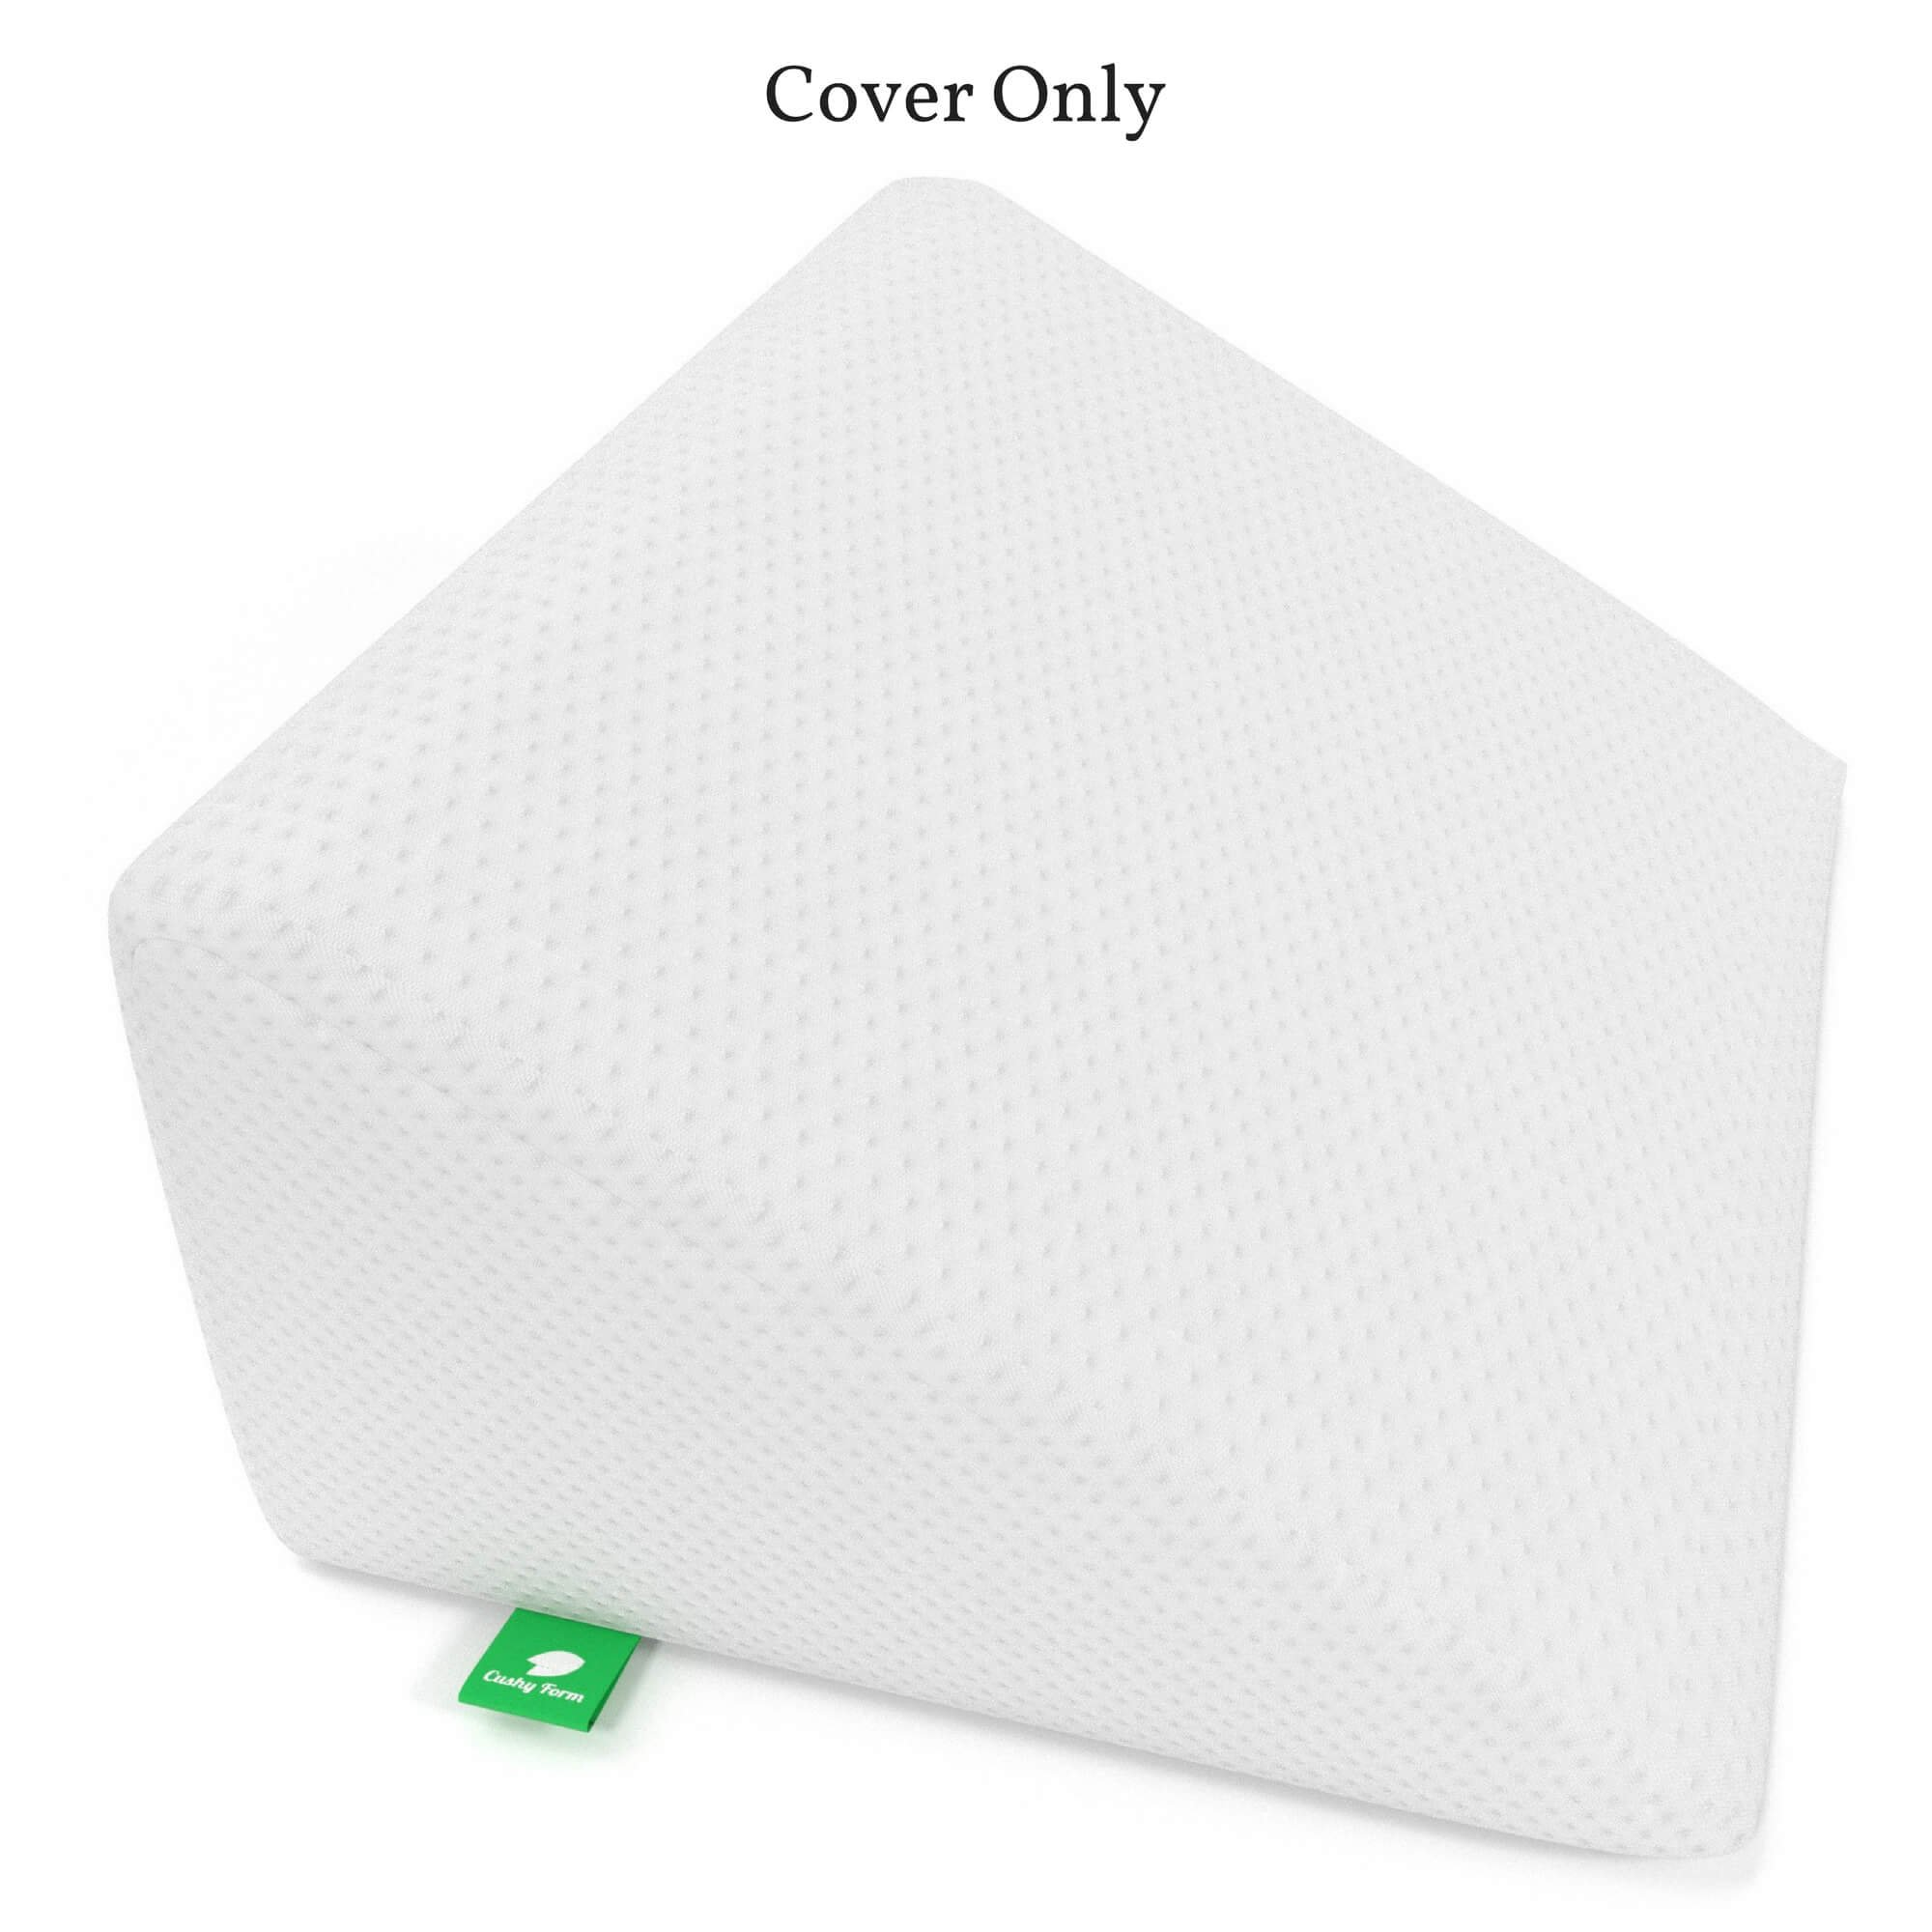 [Replacement Cover] Bed Wedge Pillow Replacement Cover - Fits Cushy Form 12 Inch Wedge Pillow - Hypoallergenic, Machine Washable Case (Replacement Cover ONLY 12'' Wedge) by Cushy Form